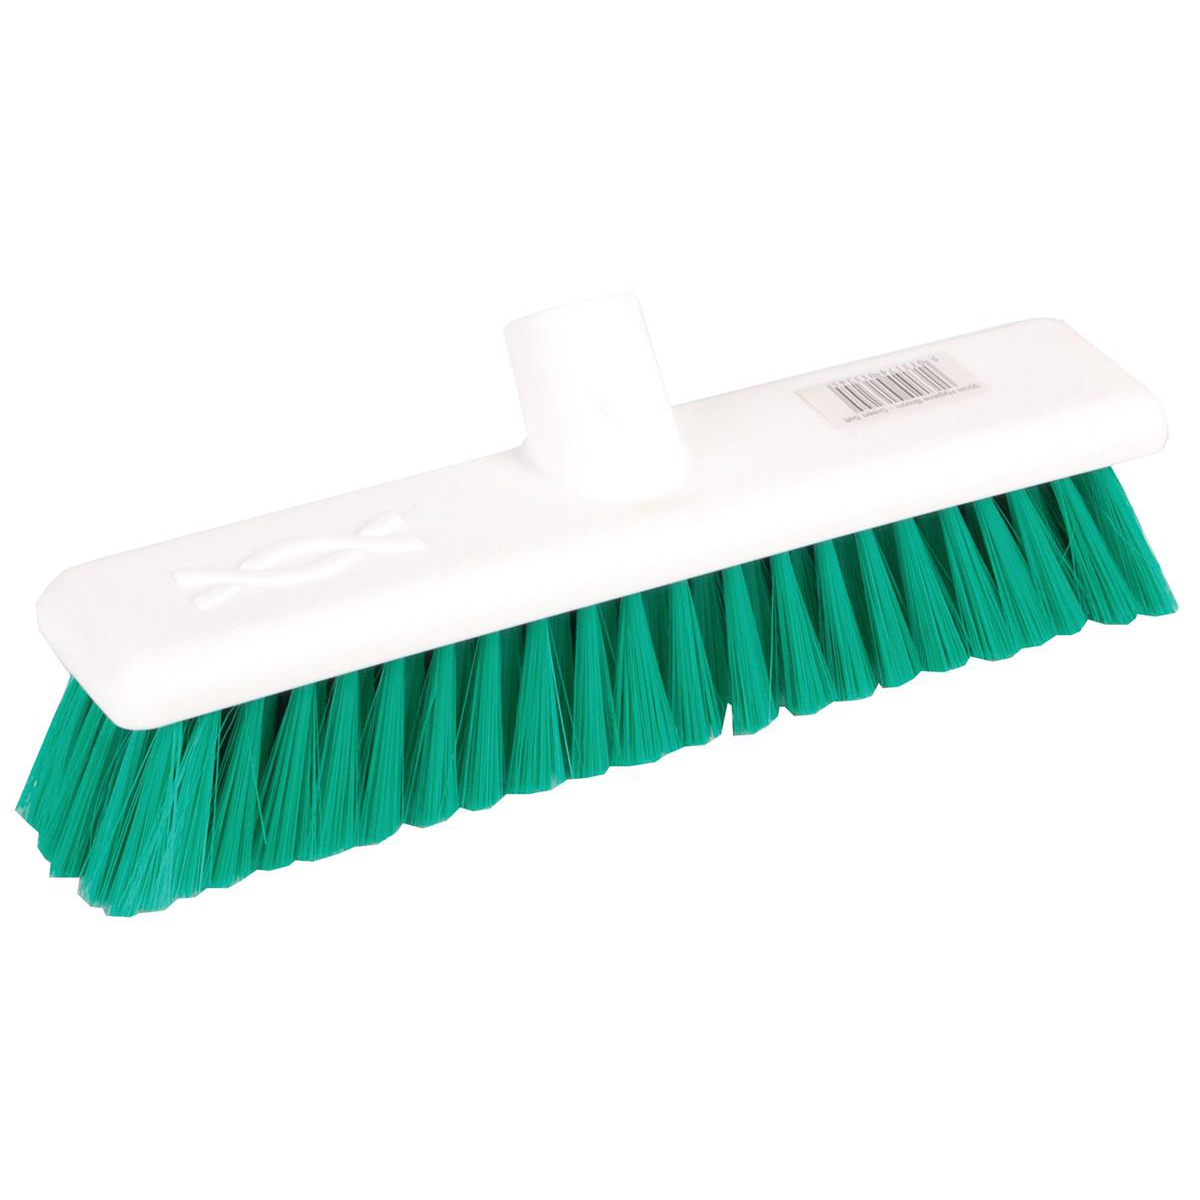 Broom heads Robert Scott & Sons Abbey Hygiene Broom 12inch Washable Soft Broom Head Green Ref BHYRS12SG